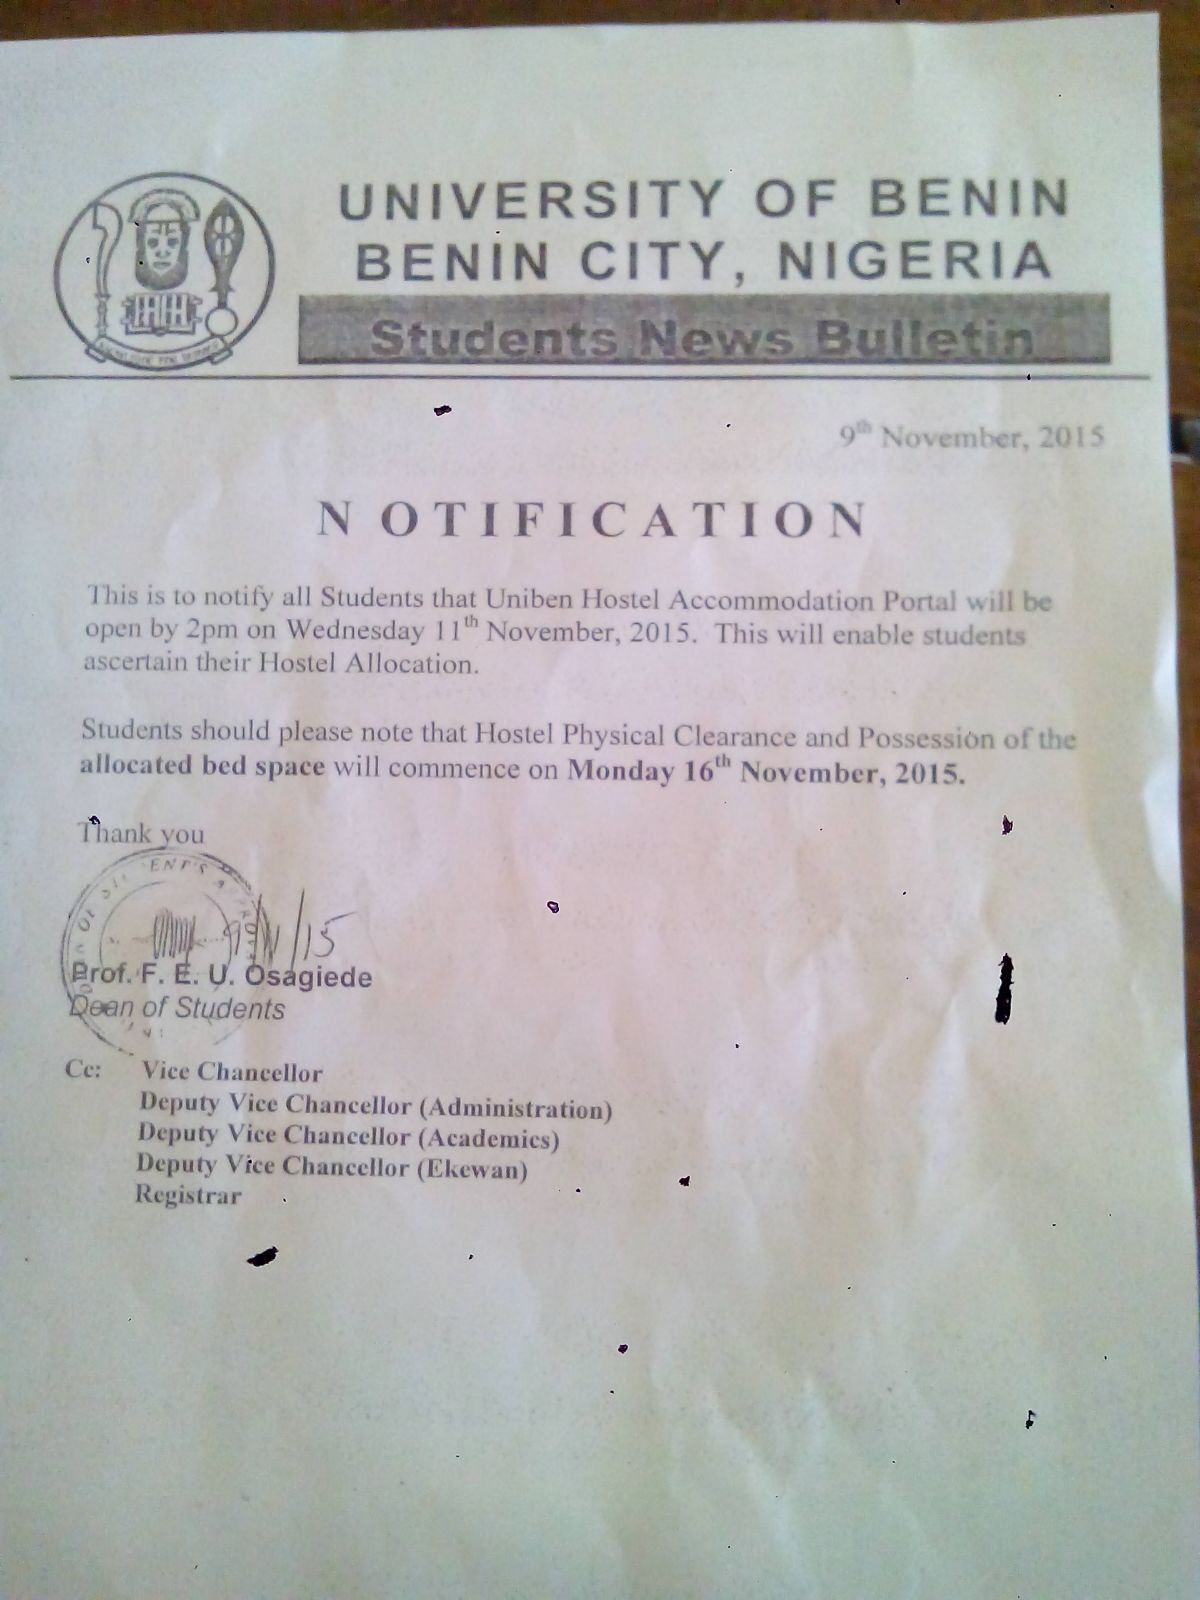 resume When Is Uniben Resuming uniben gist notification for hostel application this is to notify all students of that the accommodation portal will be opened by 2pm on wednesday 11th november 2015